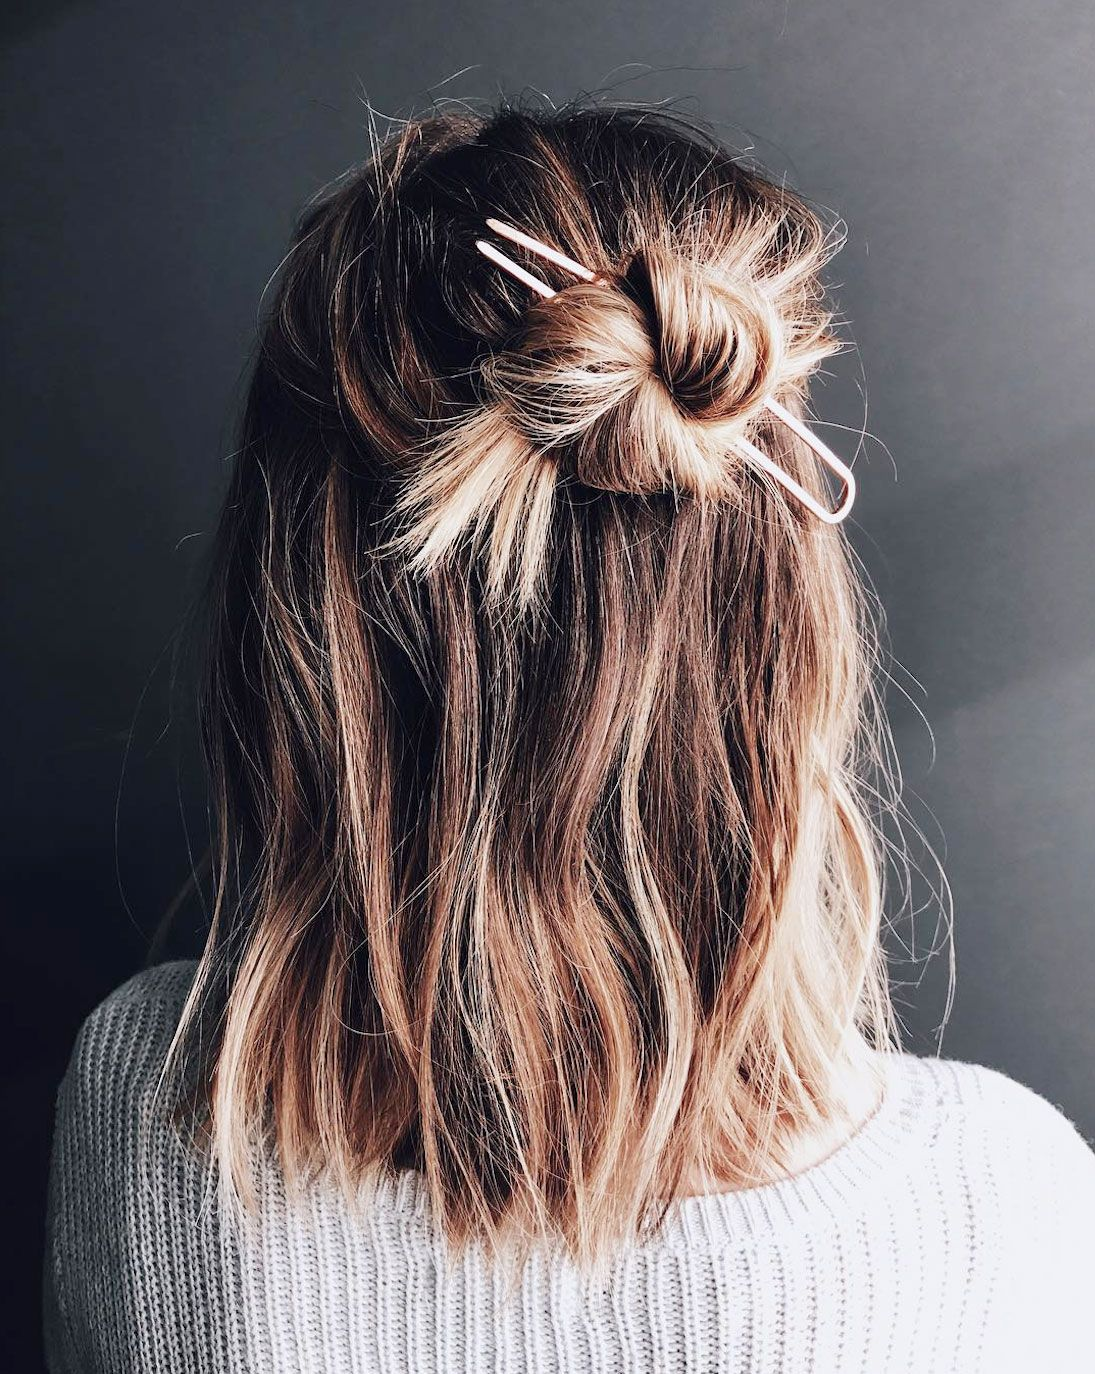 12 Half Bun Hairstyles for 12 - How to Do a Half Bun Tutorial